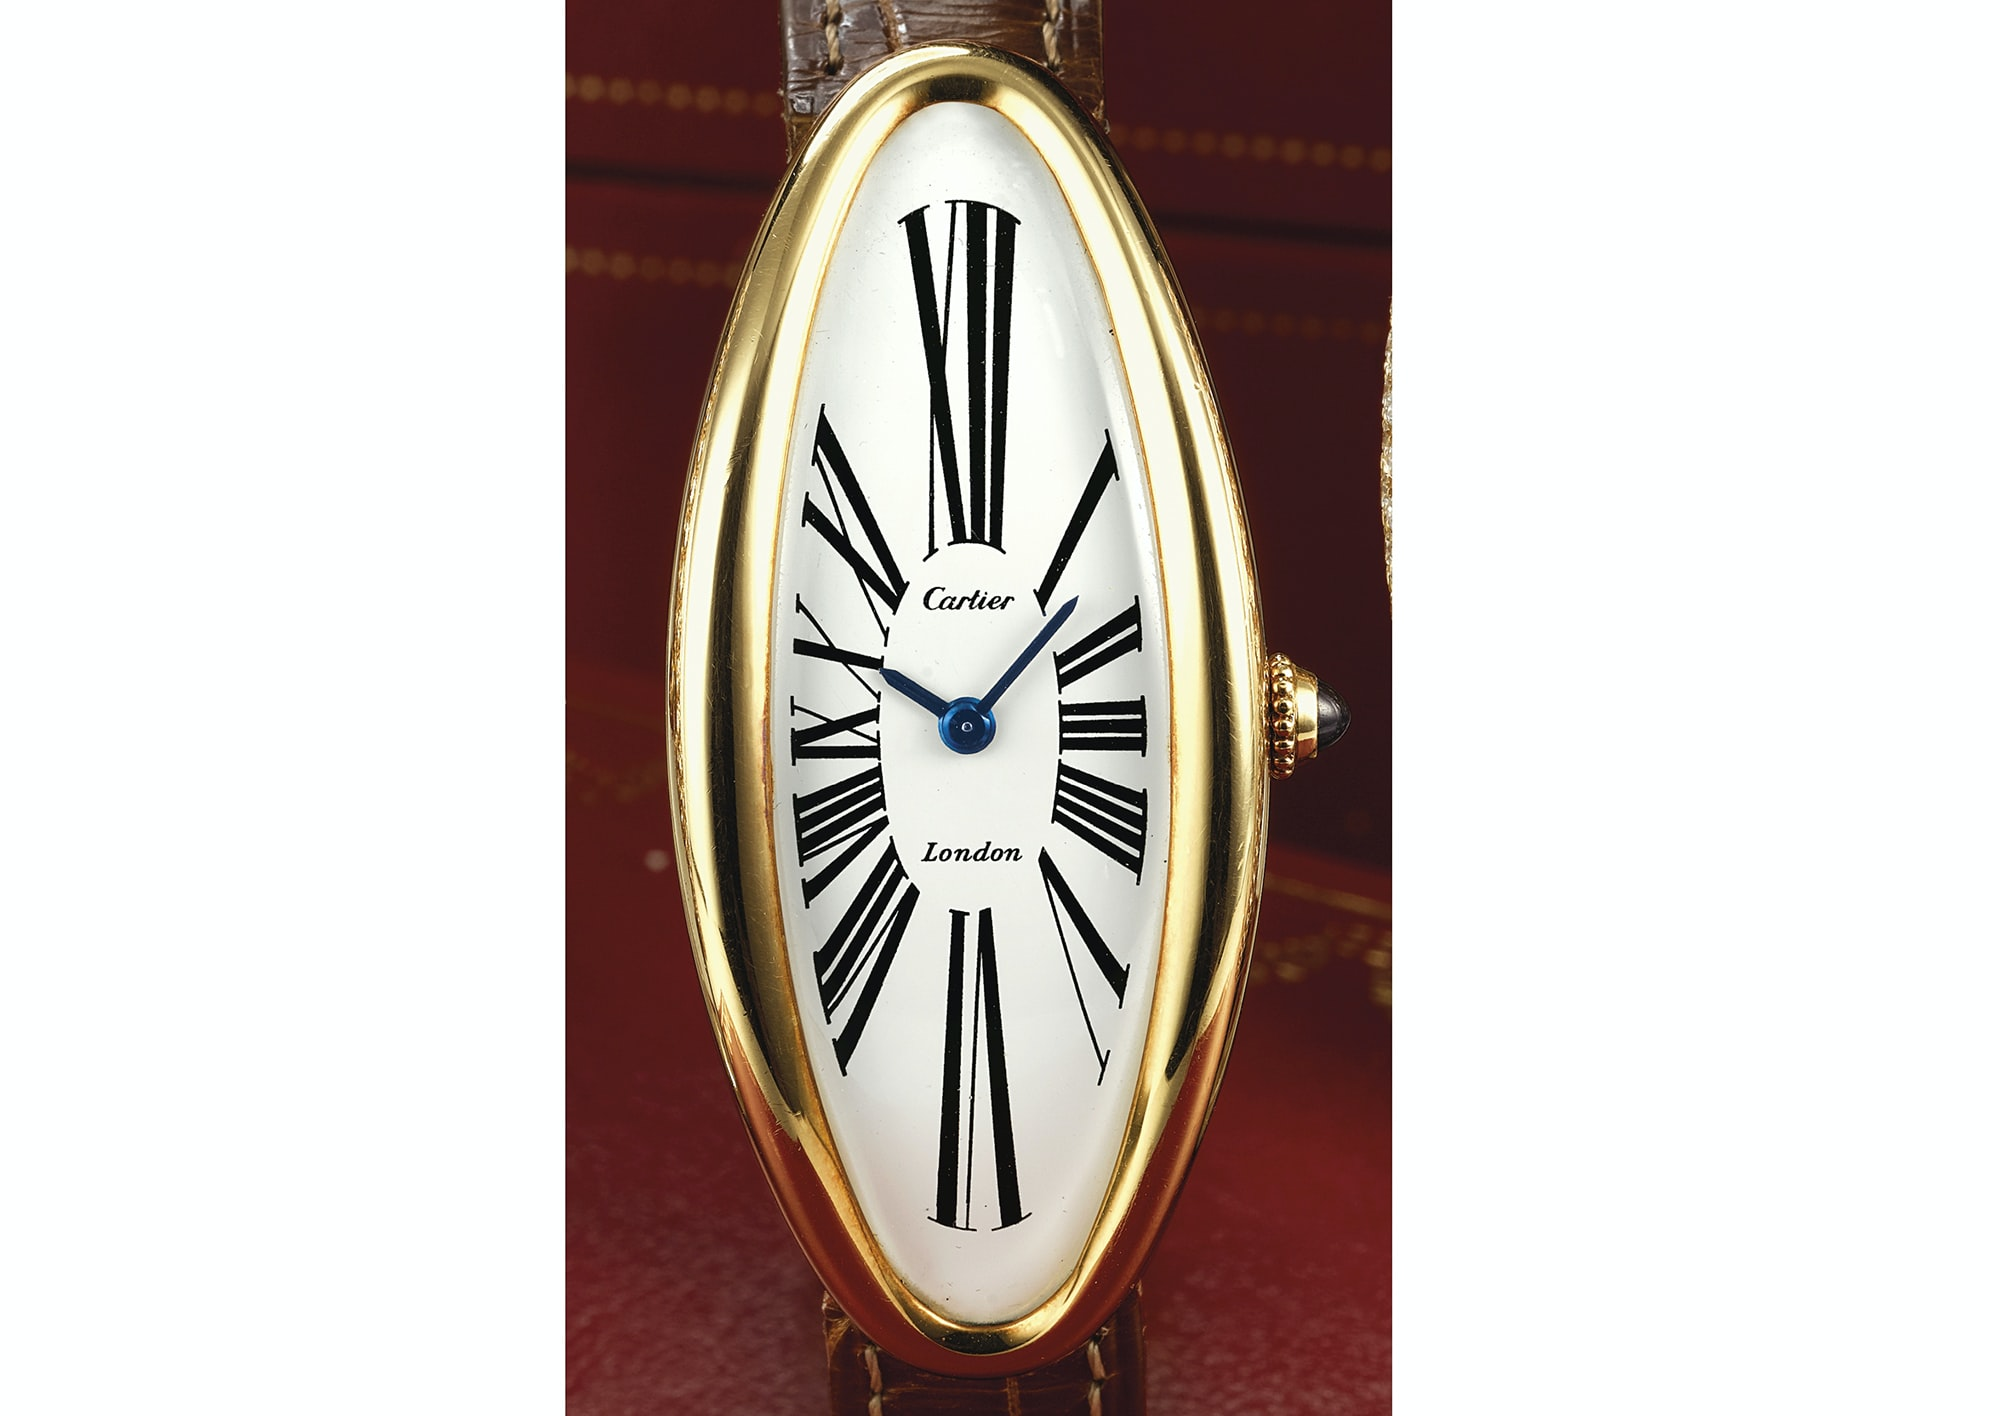 The Cartier Elongated Oval Baignoire Allongee Editors' Picks: The HODINKEE Valentine's Day 2016 Watch Gift Guide, Because Watches Won't Give You Cavities Editors\' Picks: The HODINKEE Valentine\'s Day 2016 Watch Gift Guide, Because Watches Won\'t Give You Cavities HK0385 2044 lr 1